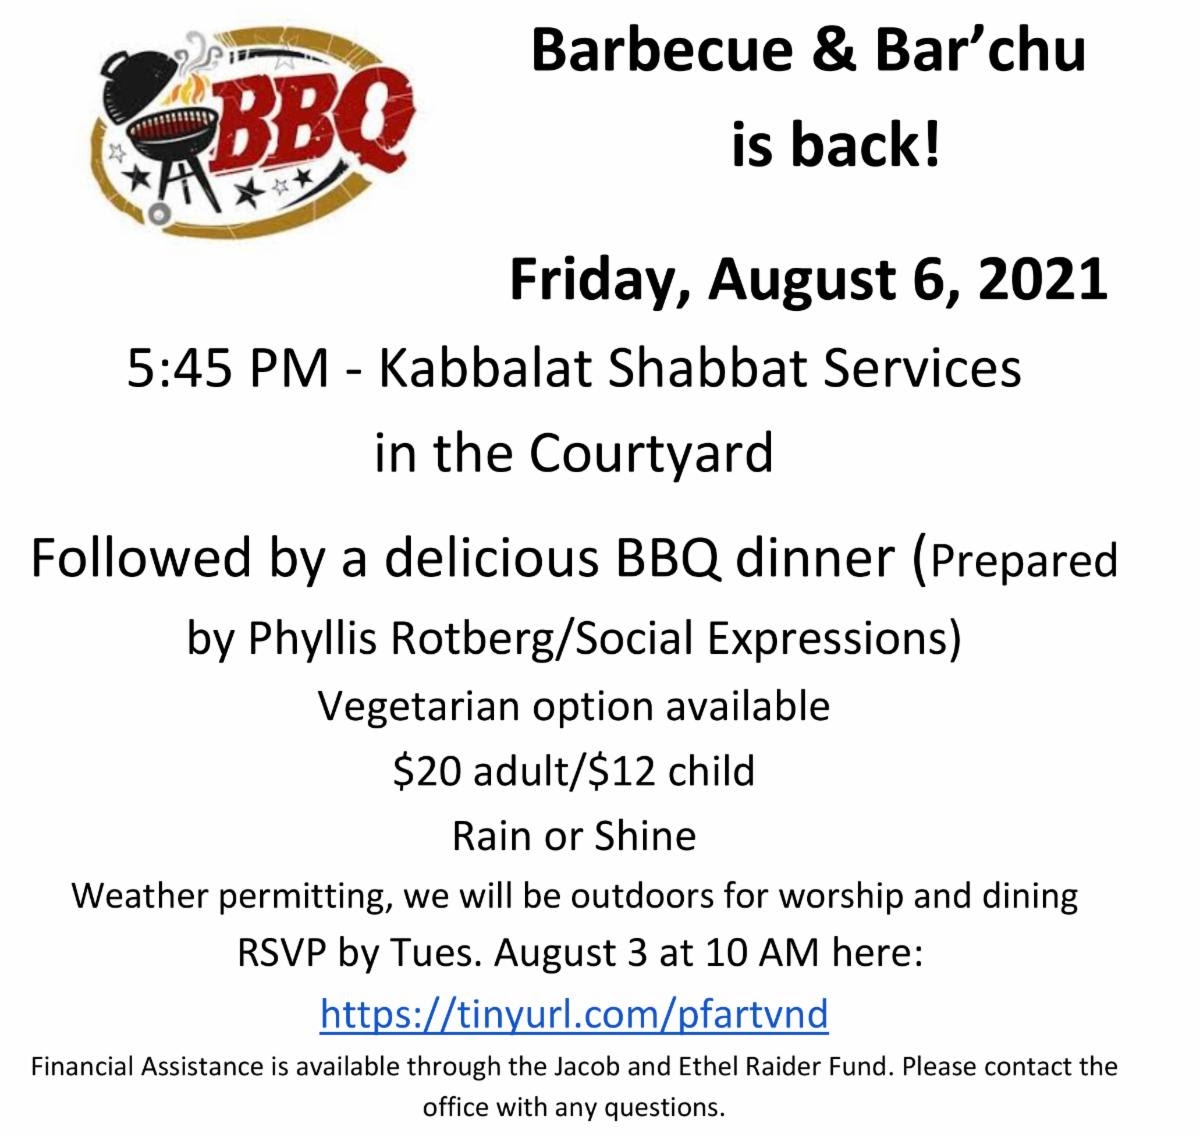 Temple israel flyer for BBQ and barachu